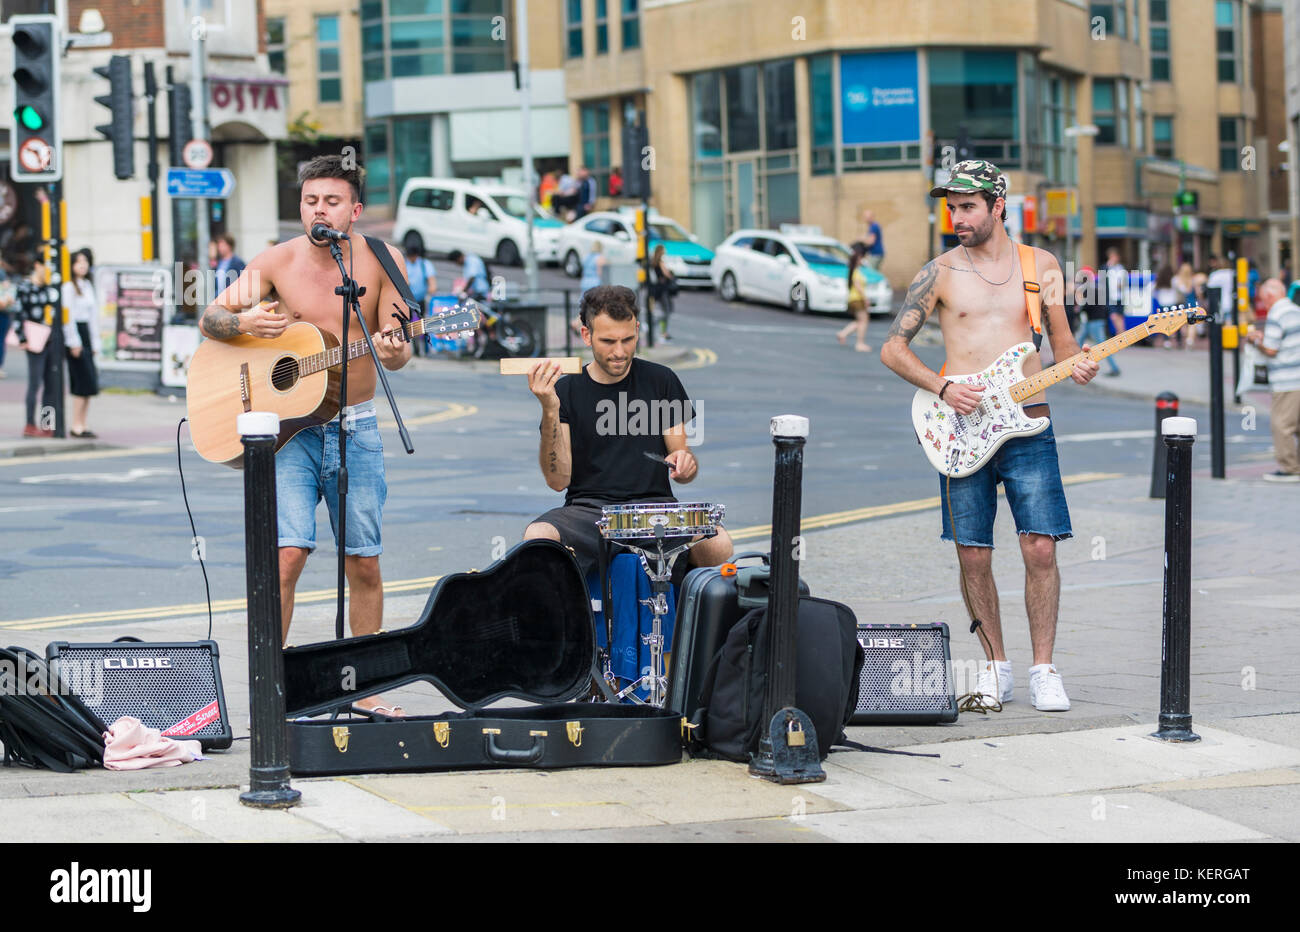 Group of male shirtless buskers singing in the city in Summer in Brighton, East Sussex, England, UK. - Stock Image